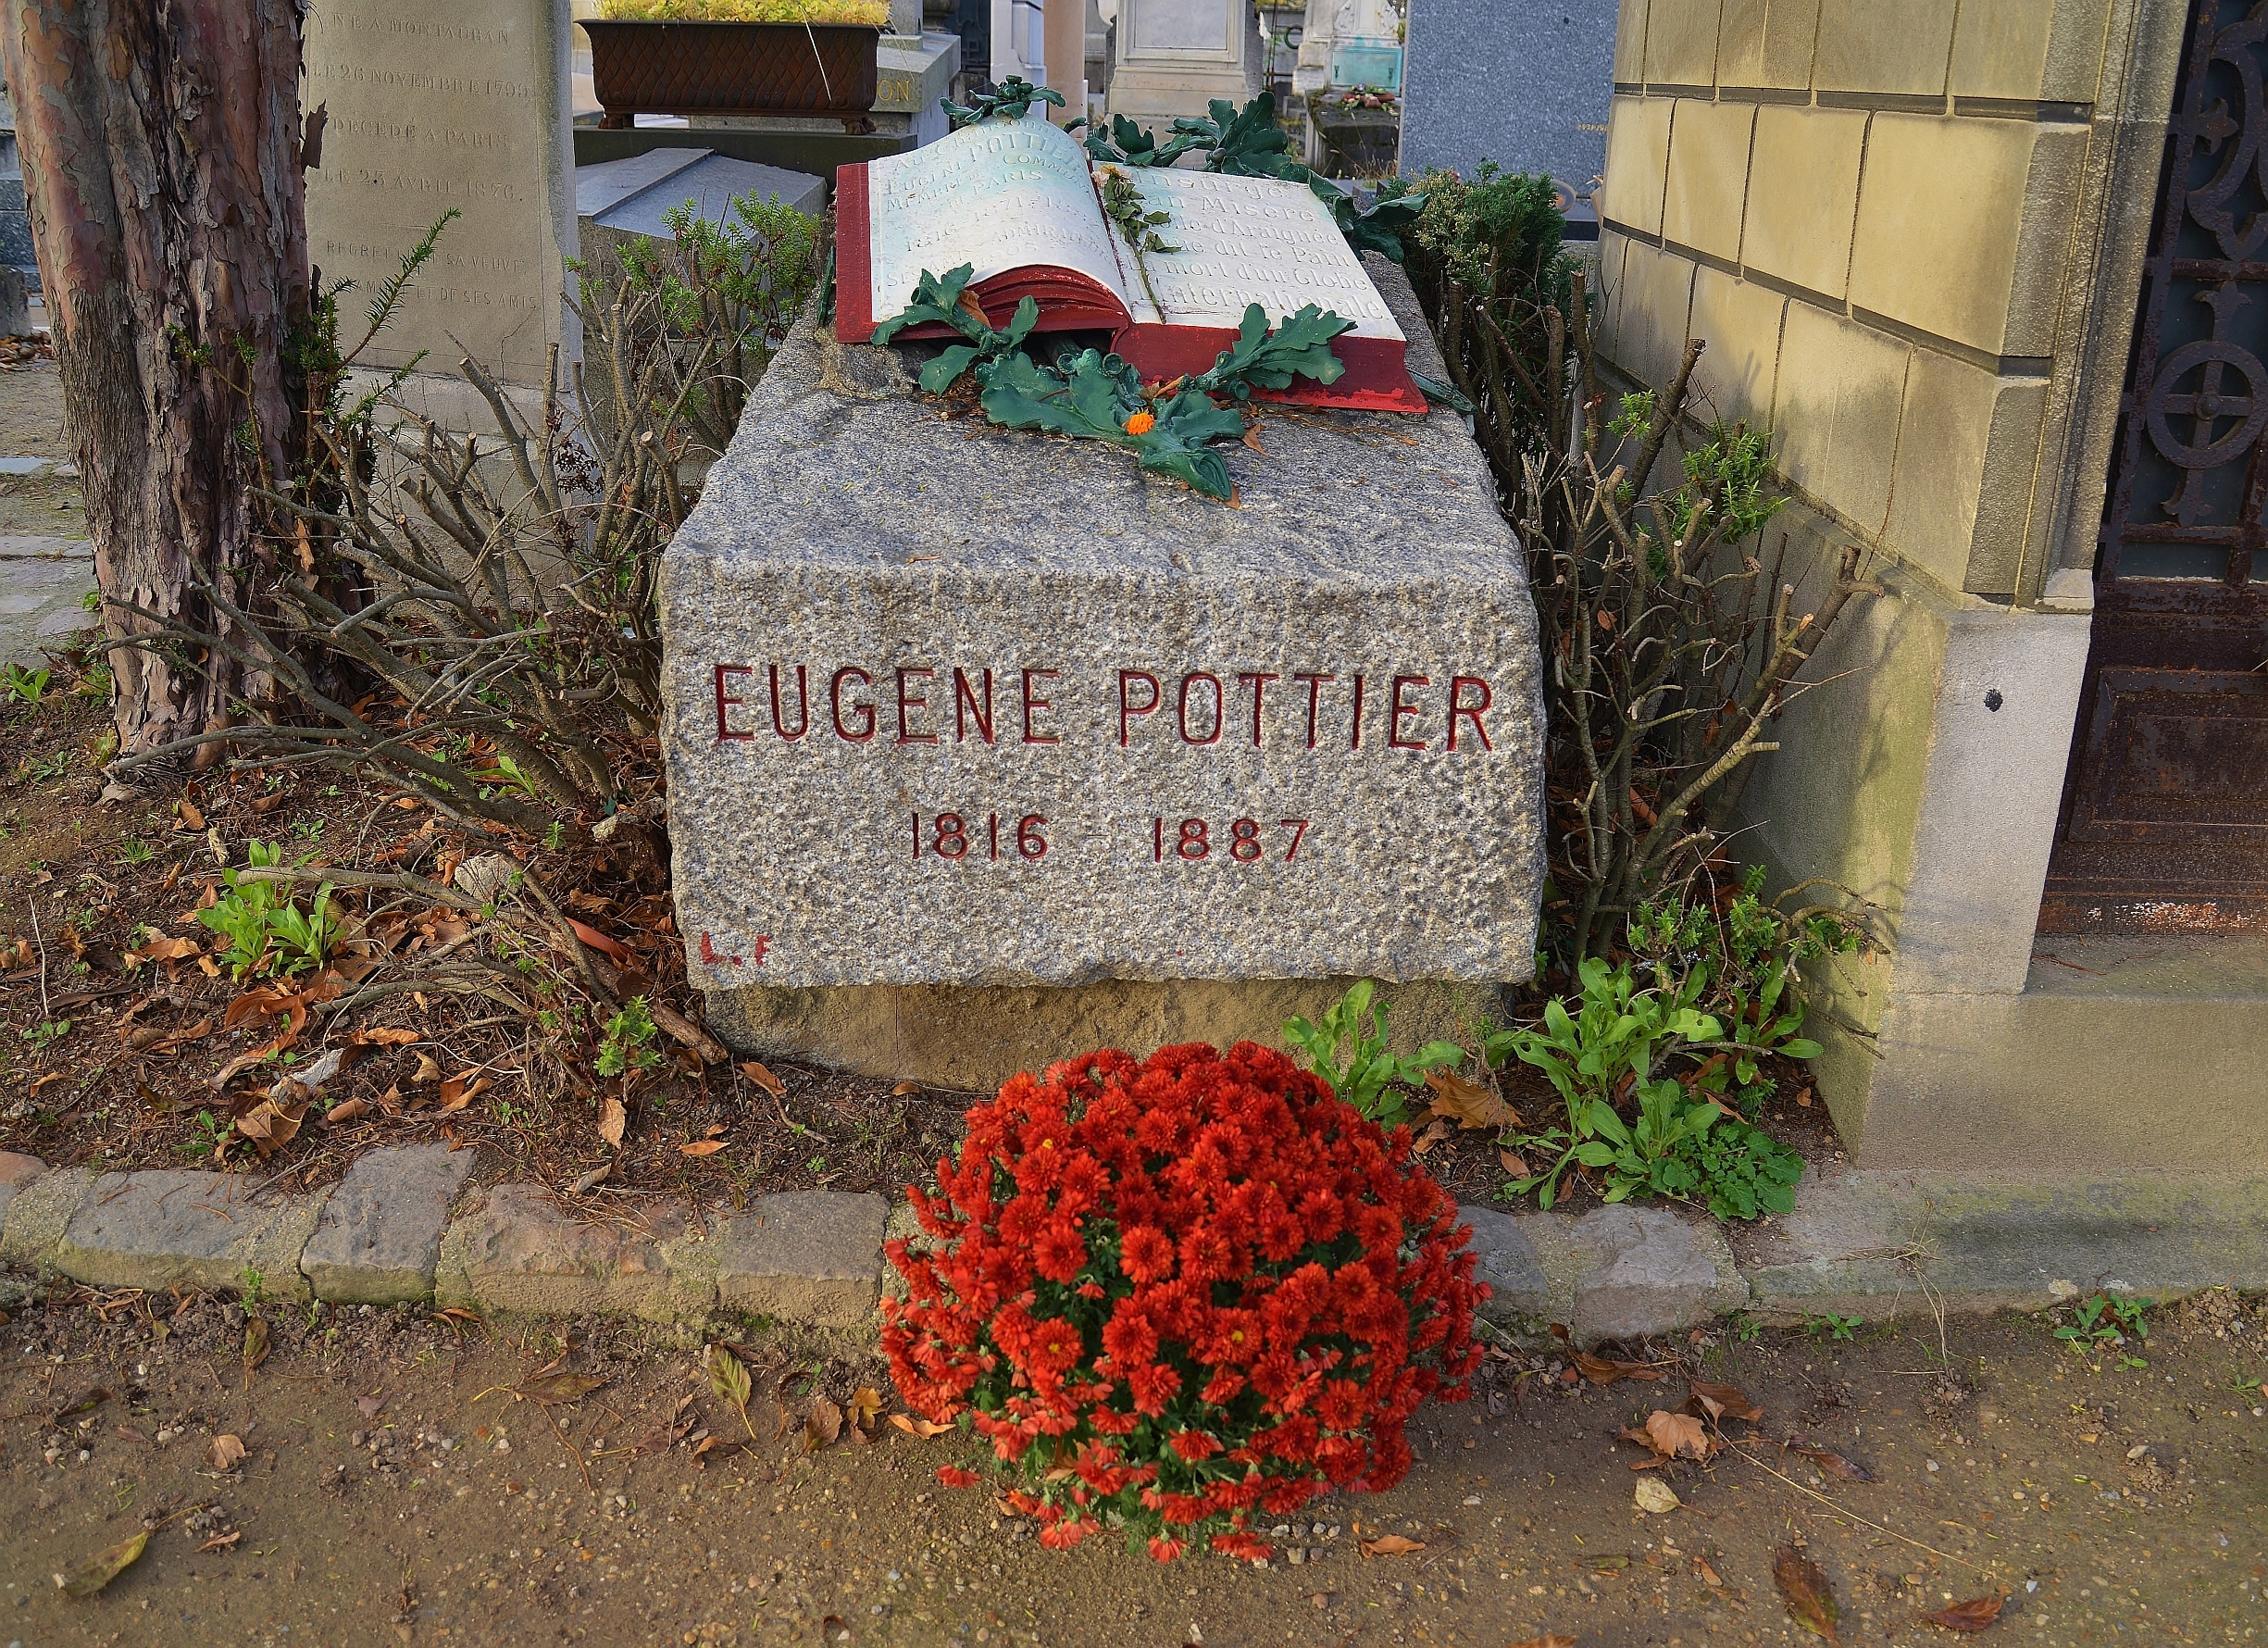 The Tomb of Eugene Pottier (1816-1887), who wrote L'Internationale in 1871. Pere Lachaise Cemetery, Paris, France. Taken on November 5, 2015 by Barry Marsh. Public Domain.